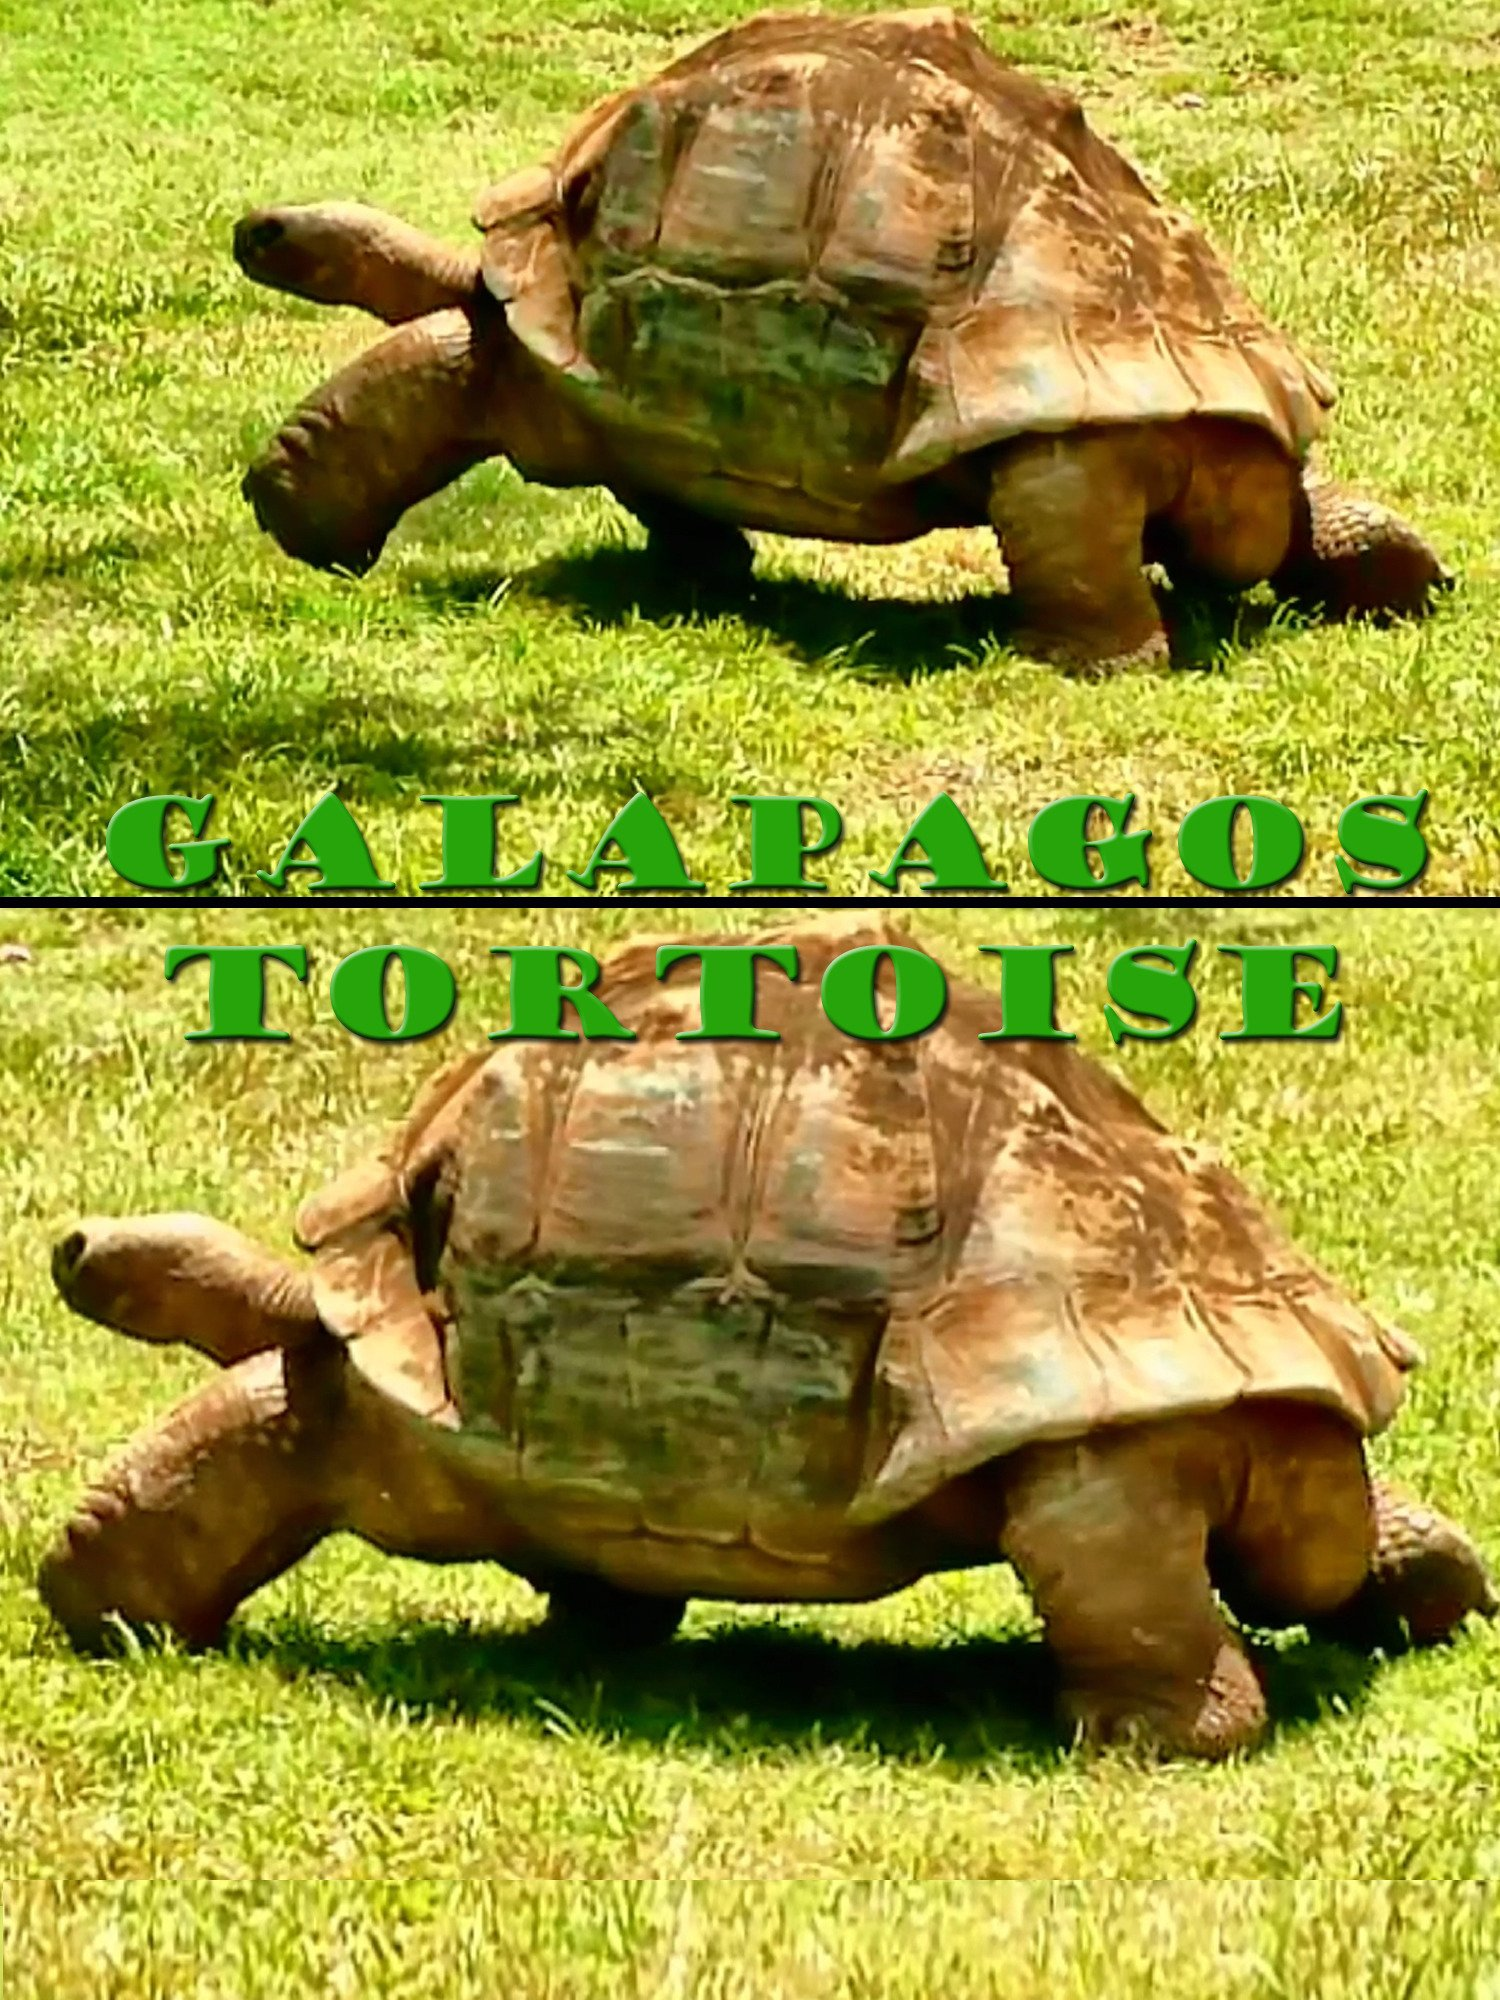 Clip: Galapagos Tortoise